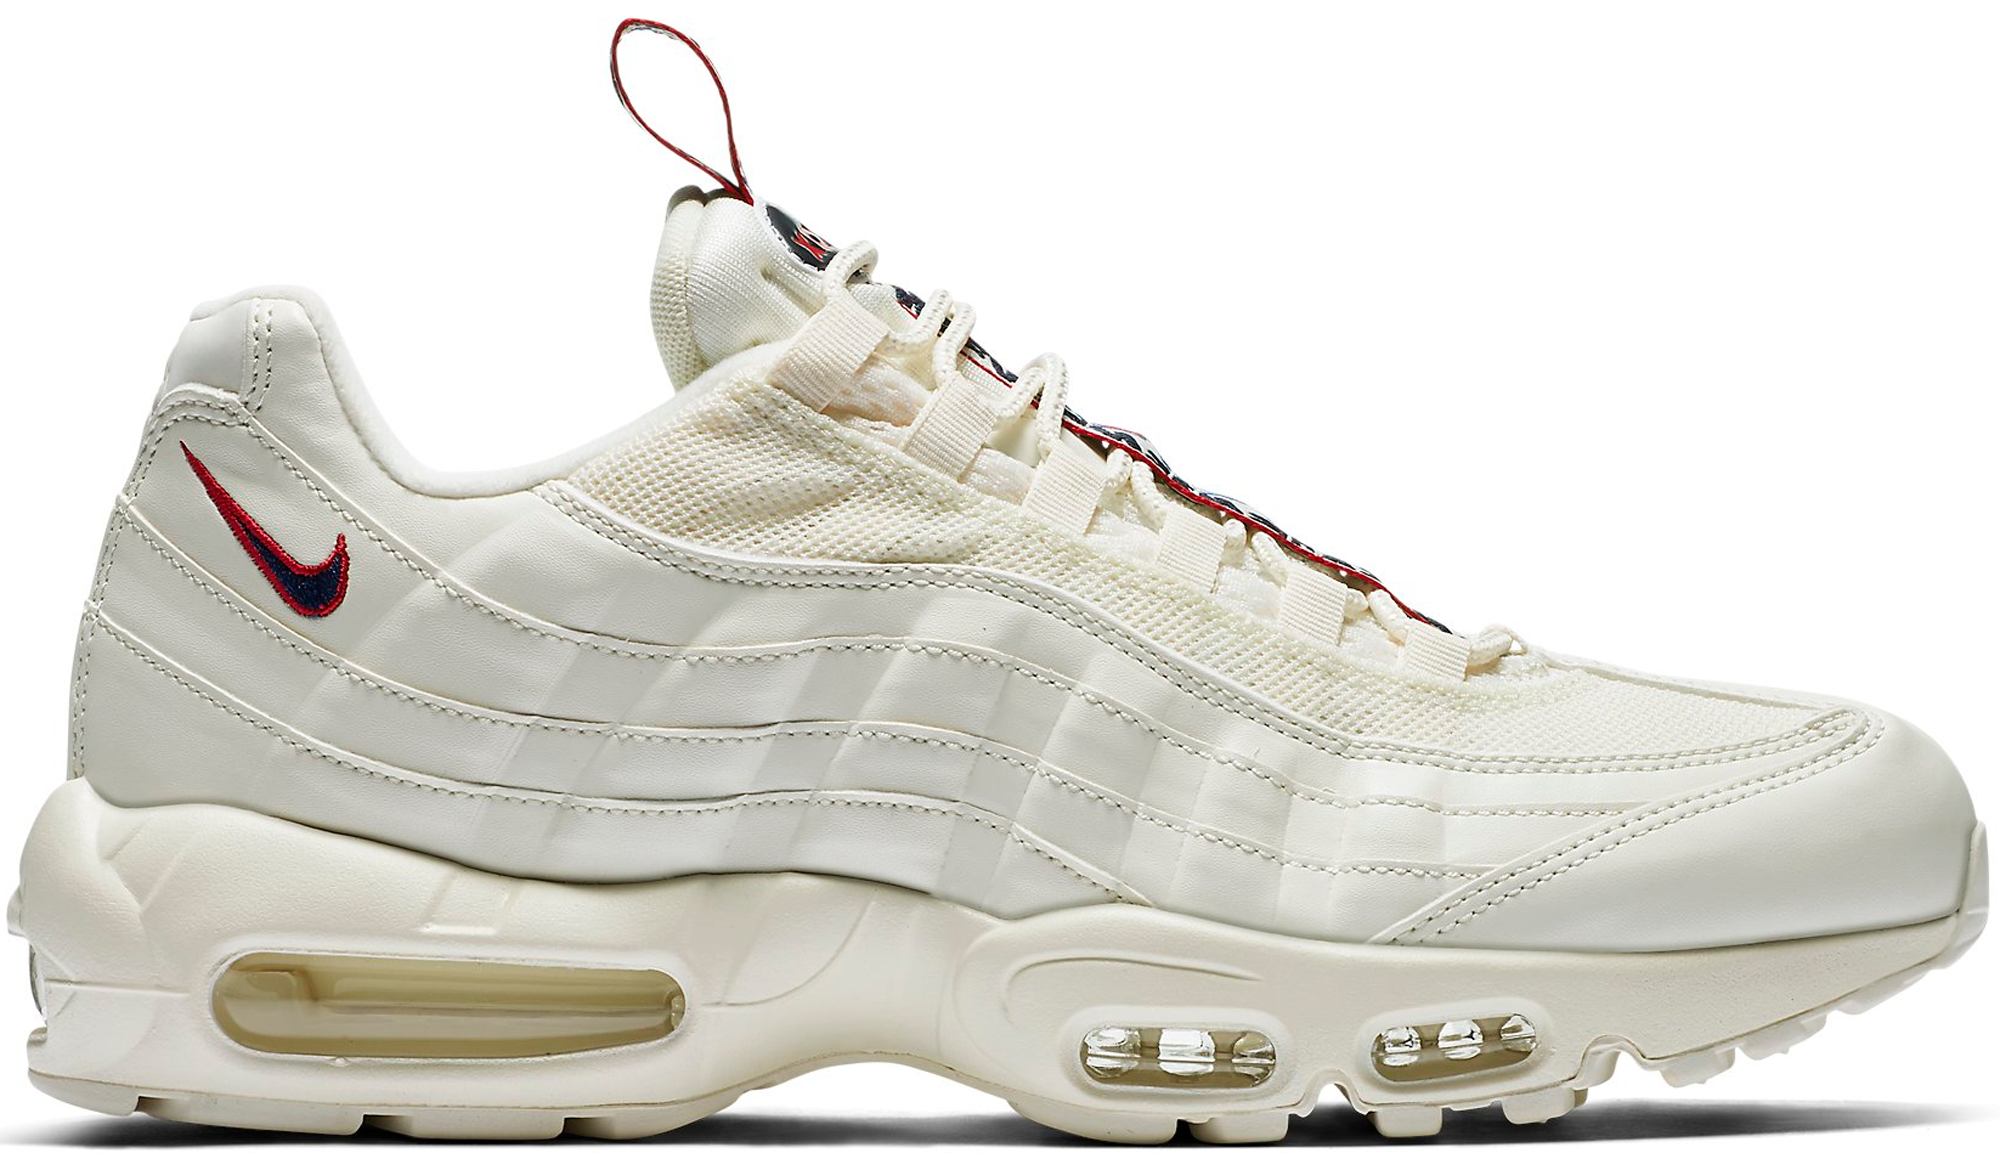 Nike Air Max 95 Pull Tab Sail StockX News